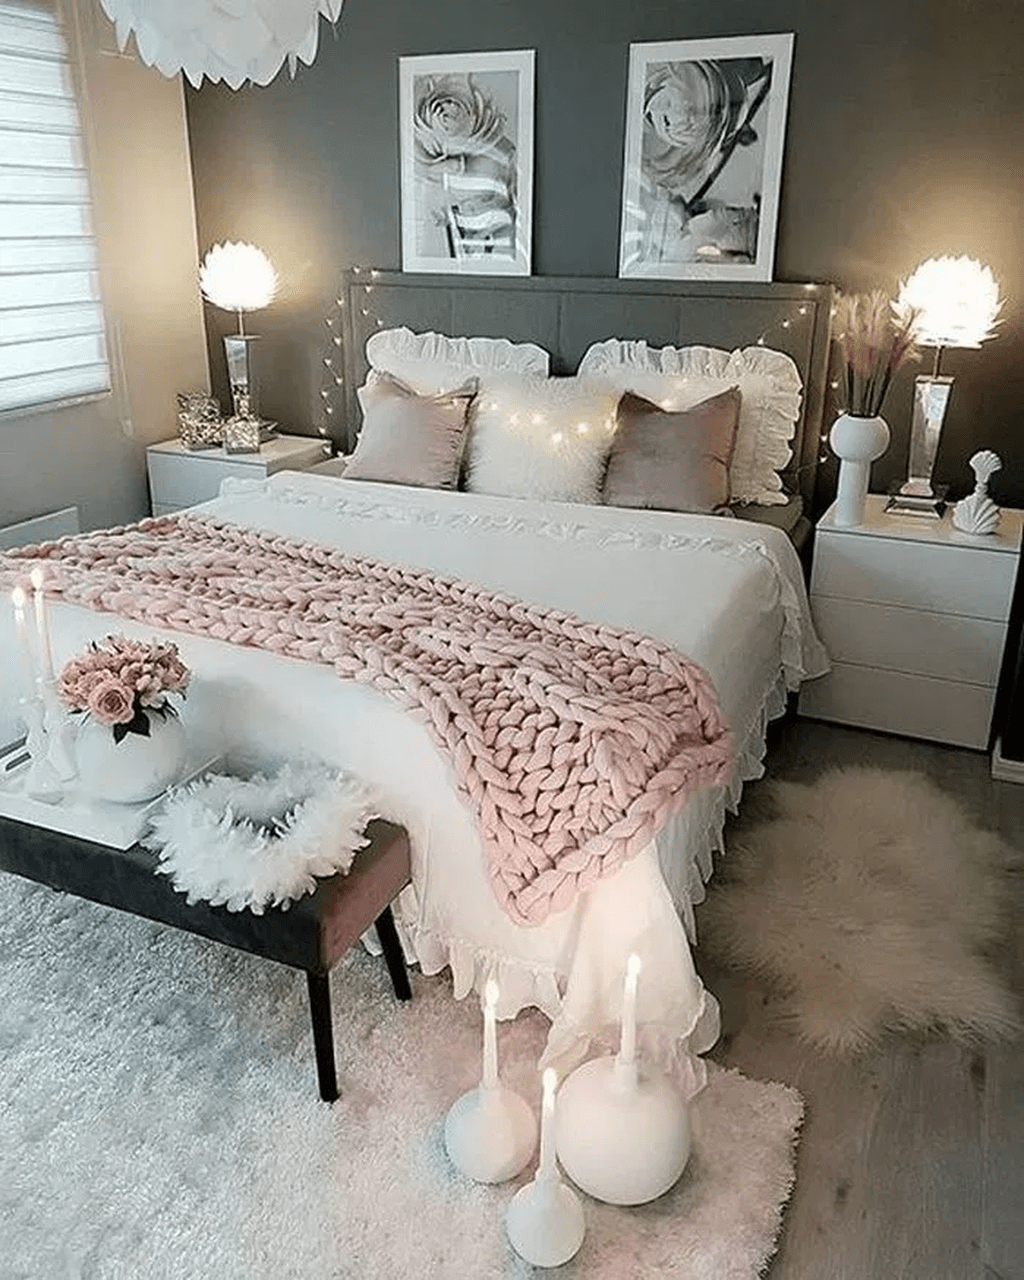 31 Stunning French Bedroom Decor Ideas That Will Inspire You Homyhomee Small Room Bedroom Room Inspiration Bedroom French Bedroom Decor